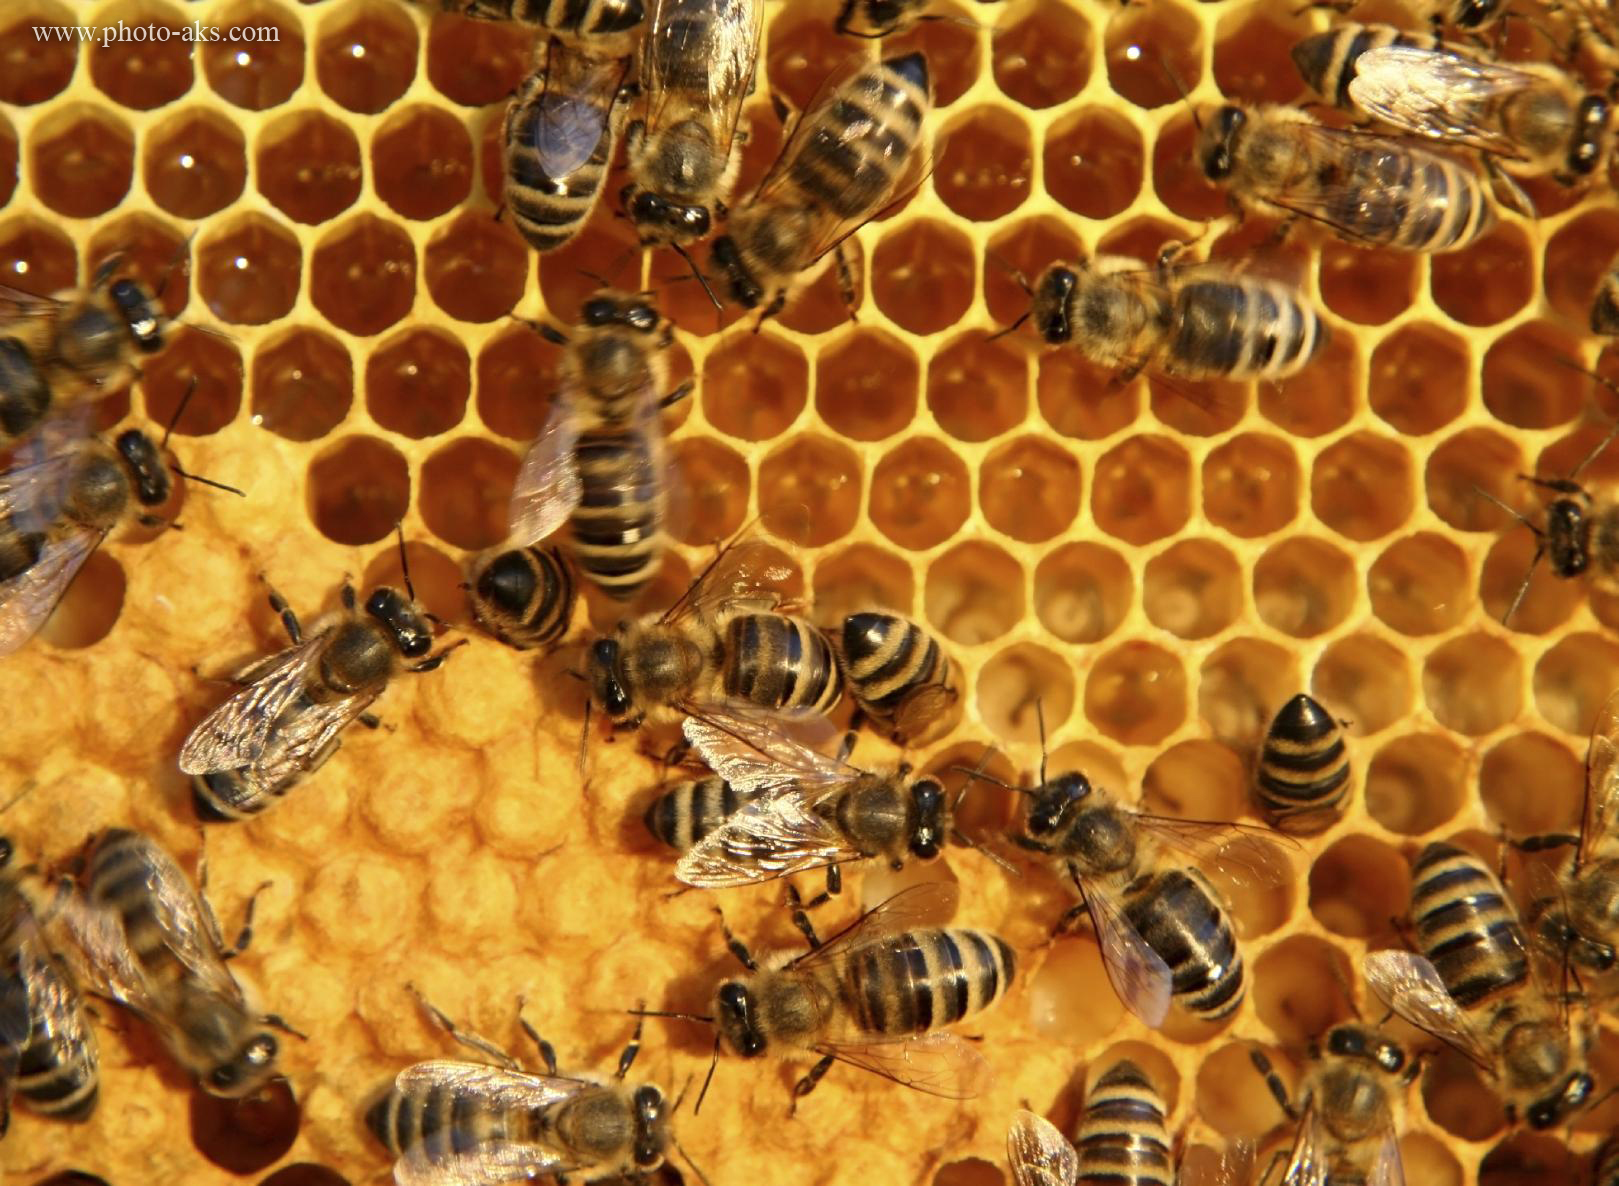 http://pic.photo-aks.com/photo/animals/insect/bee/large/bee_on_honey.jpg